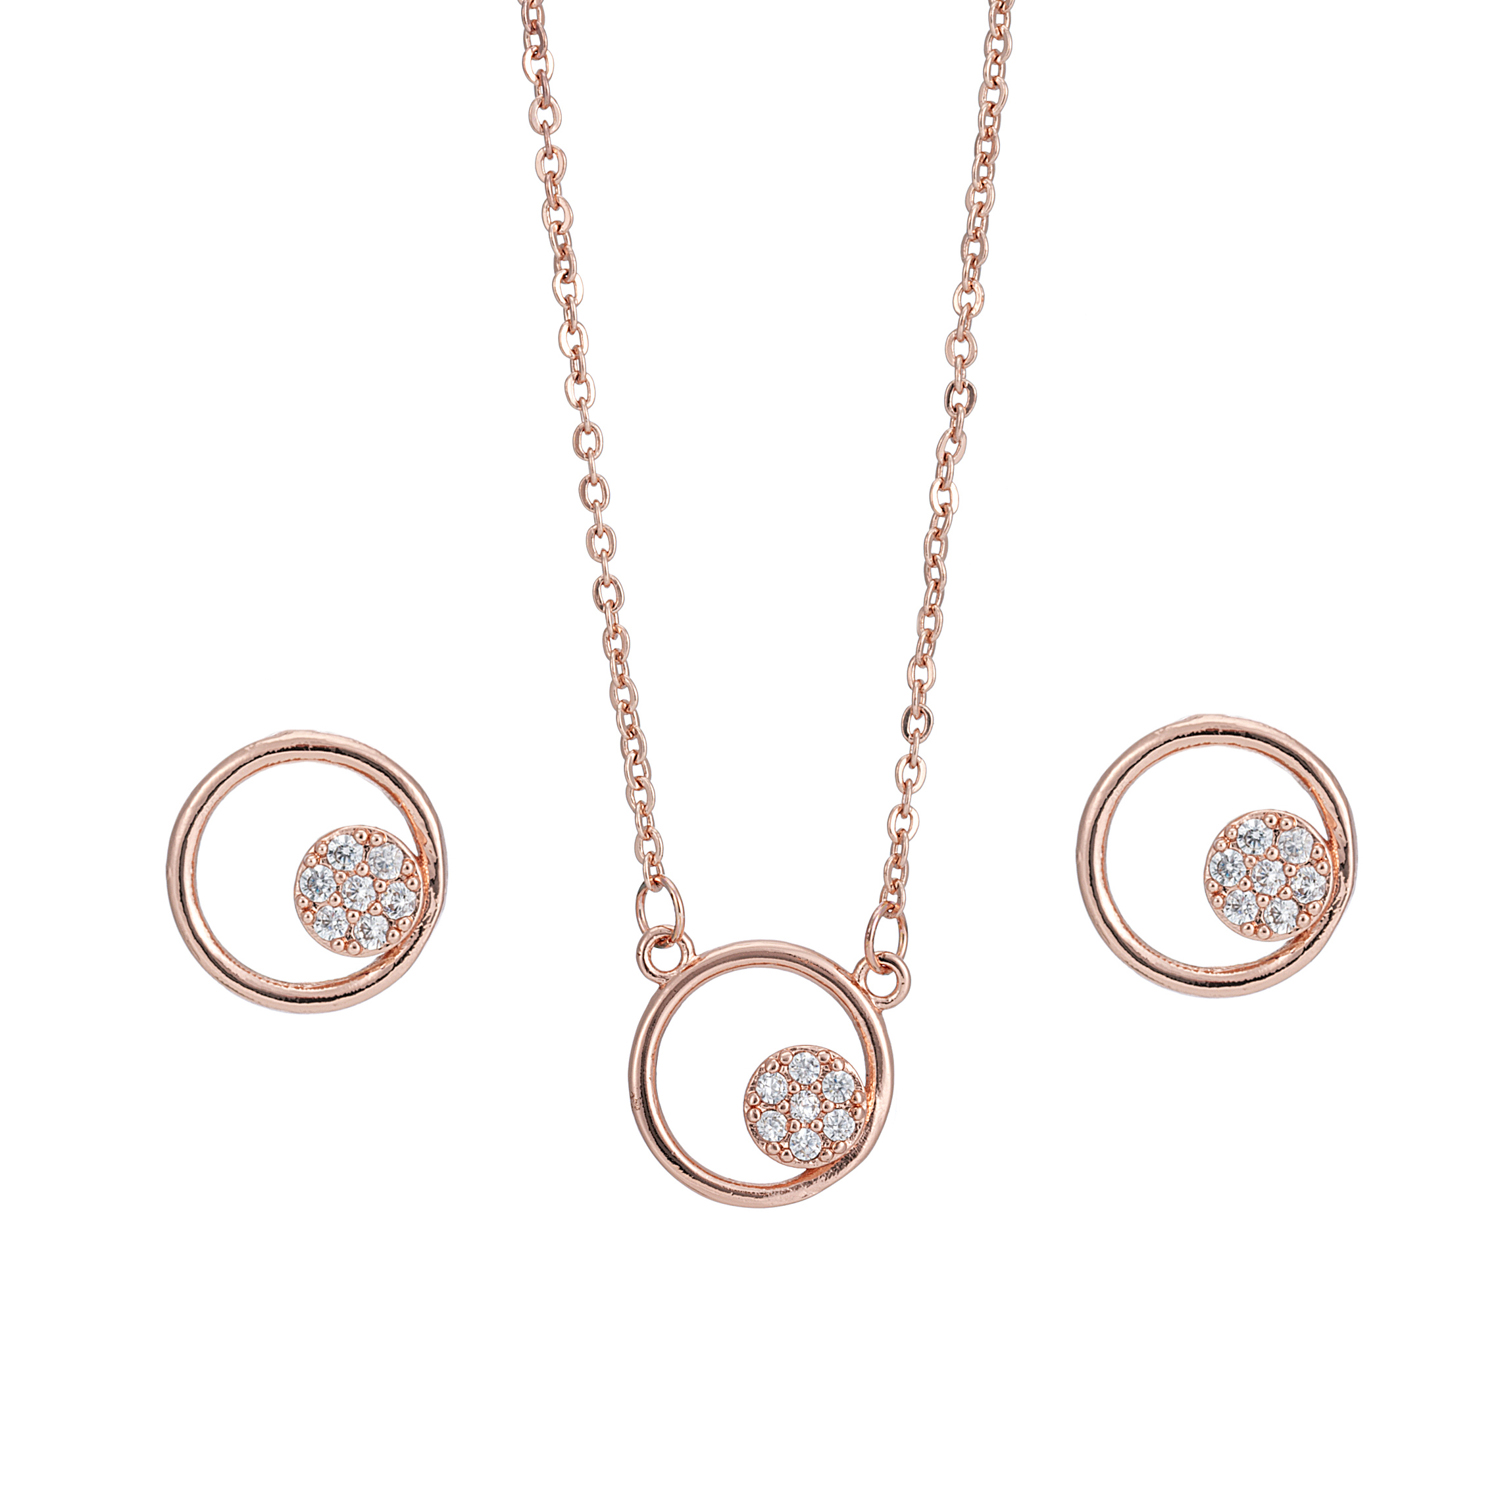 ROSE GOLD Embrace Crystal Gift Set